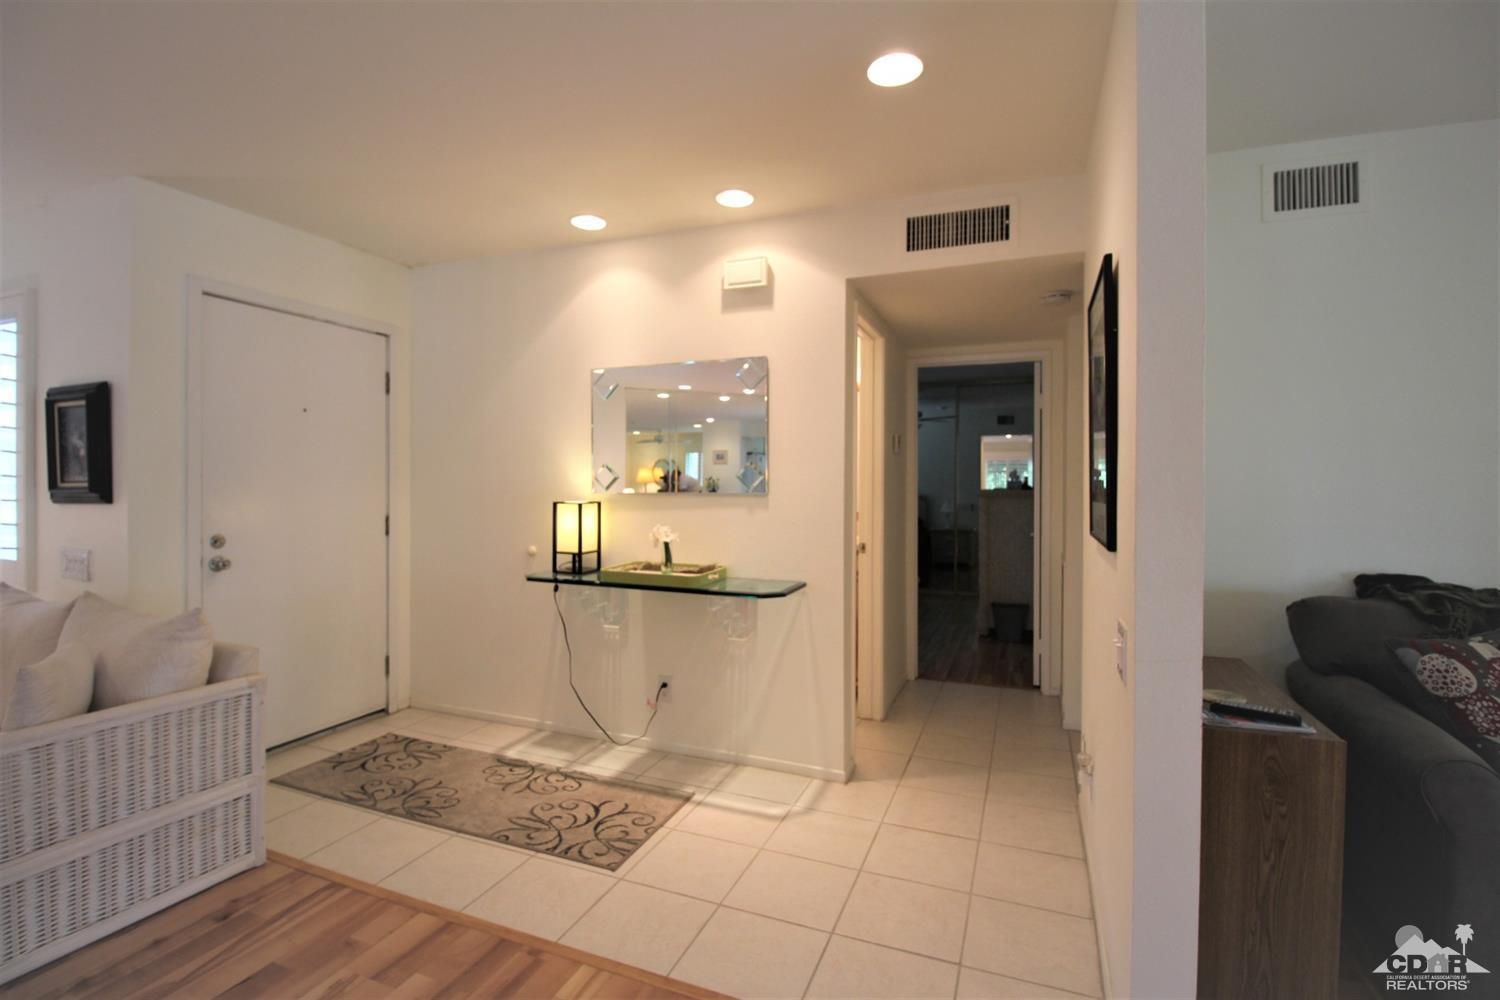 1342 S Camino Real, Palm Springs, California 92264, 2 Bedrooms Bedrooms, ,2 BathroomsBathrooms,Residential,Sold,1342 S Camino Real,219013763